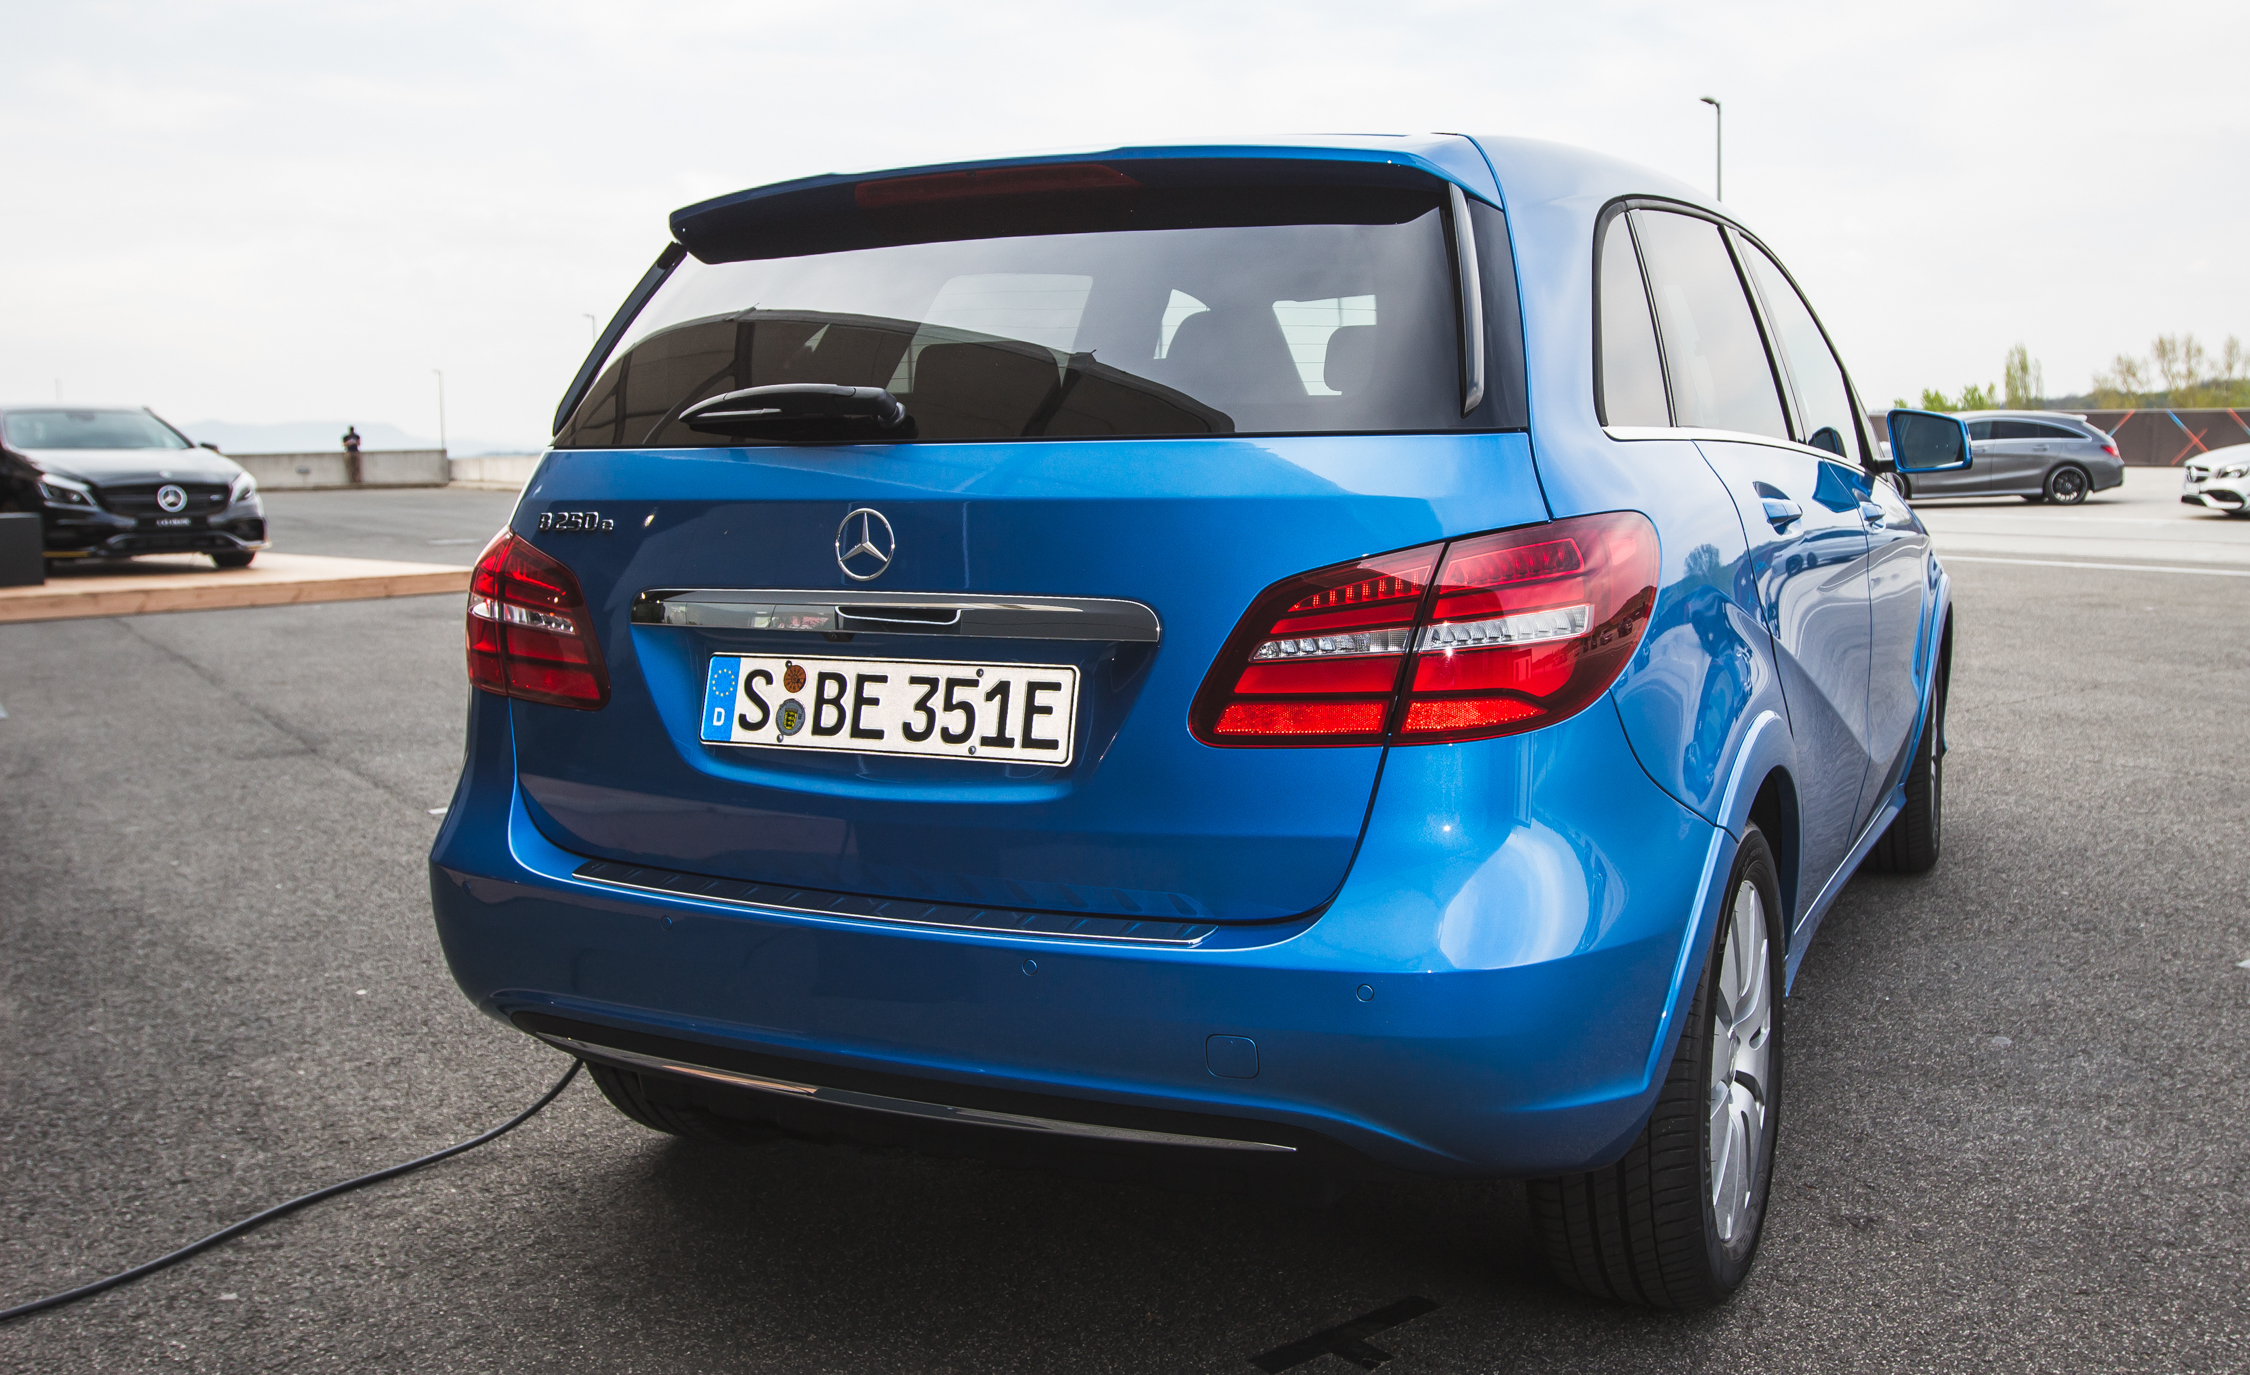 2017 Mercedes Benz B250e Exterior Rear (View 17 of 24)